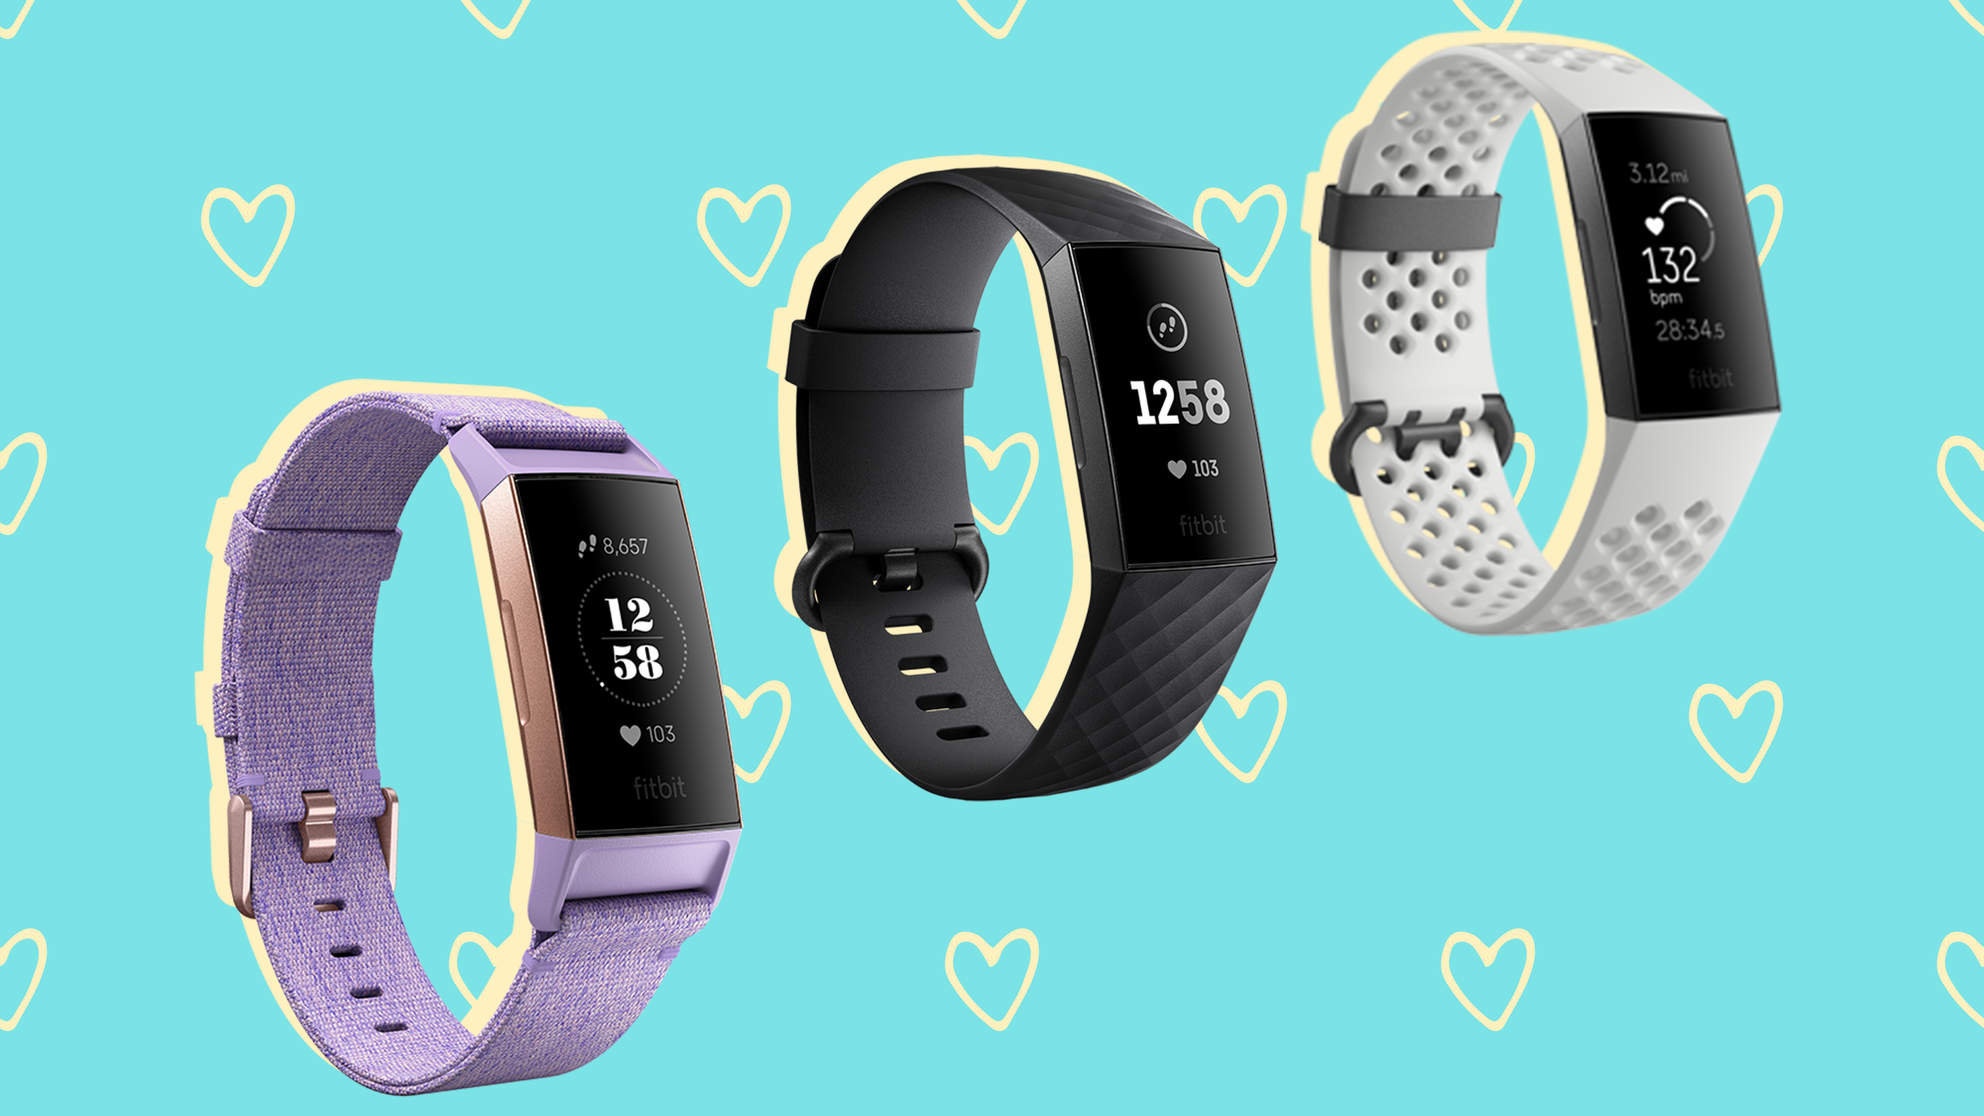 Fitbit Is Having a HUGE Valentine's Day Sale on Some of Their Most Popular Trackers